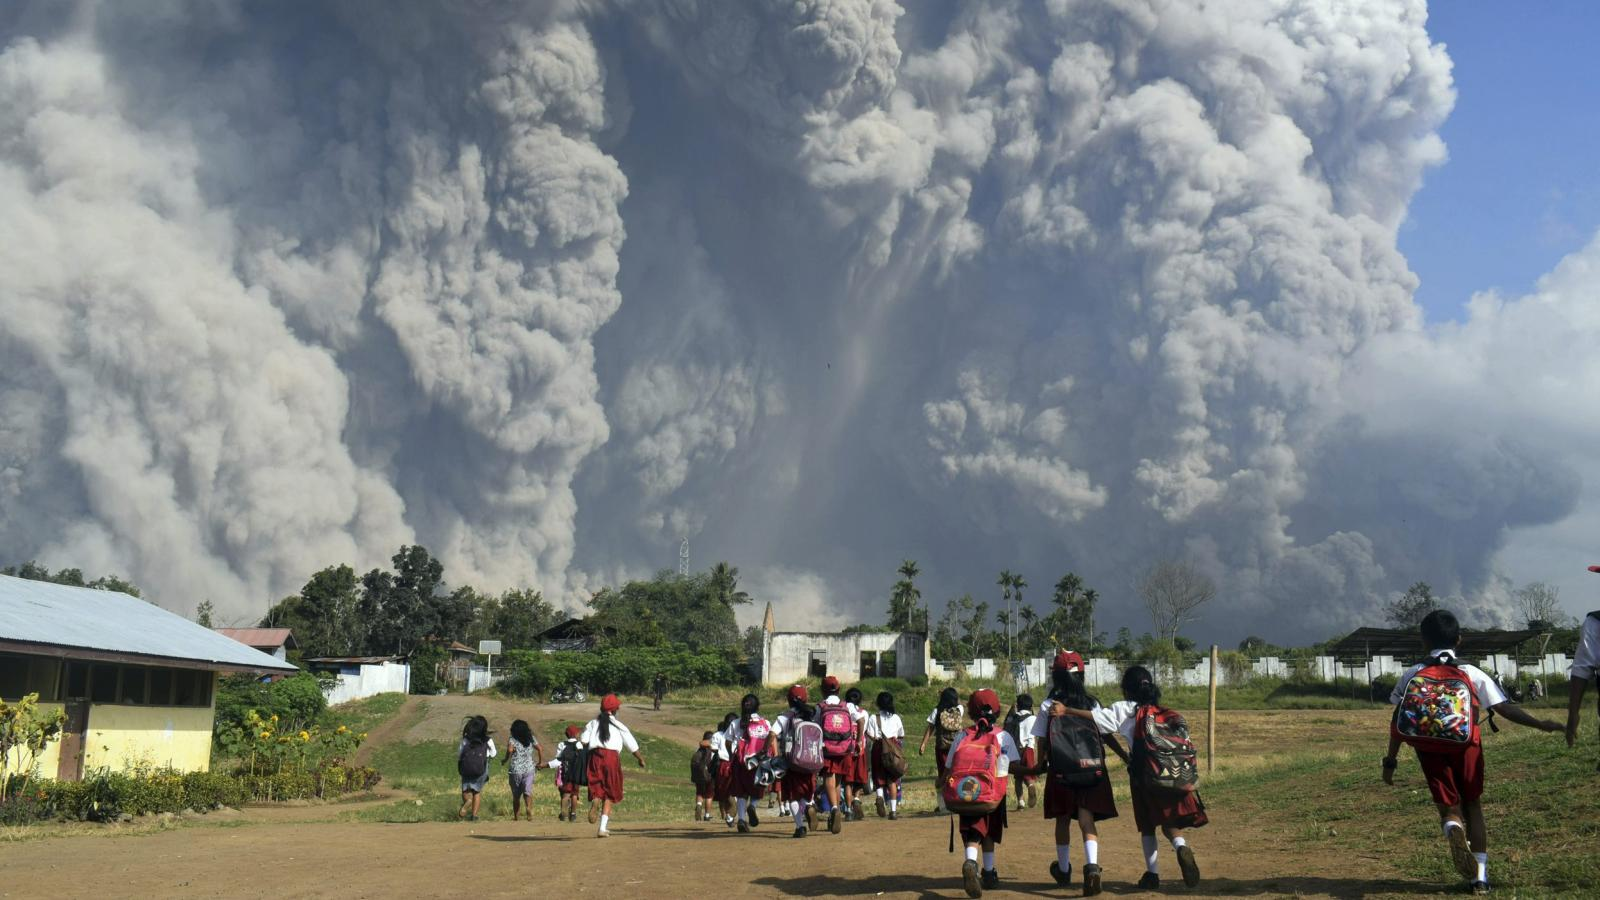 Indonesia volcano: An eruption at Mount Sinabung